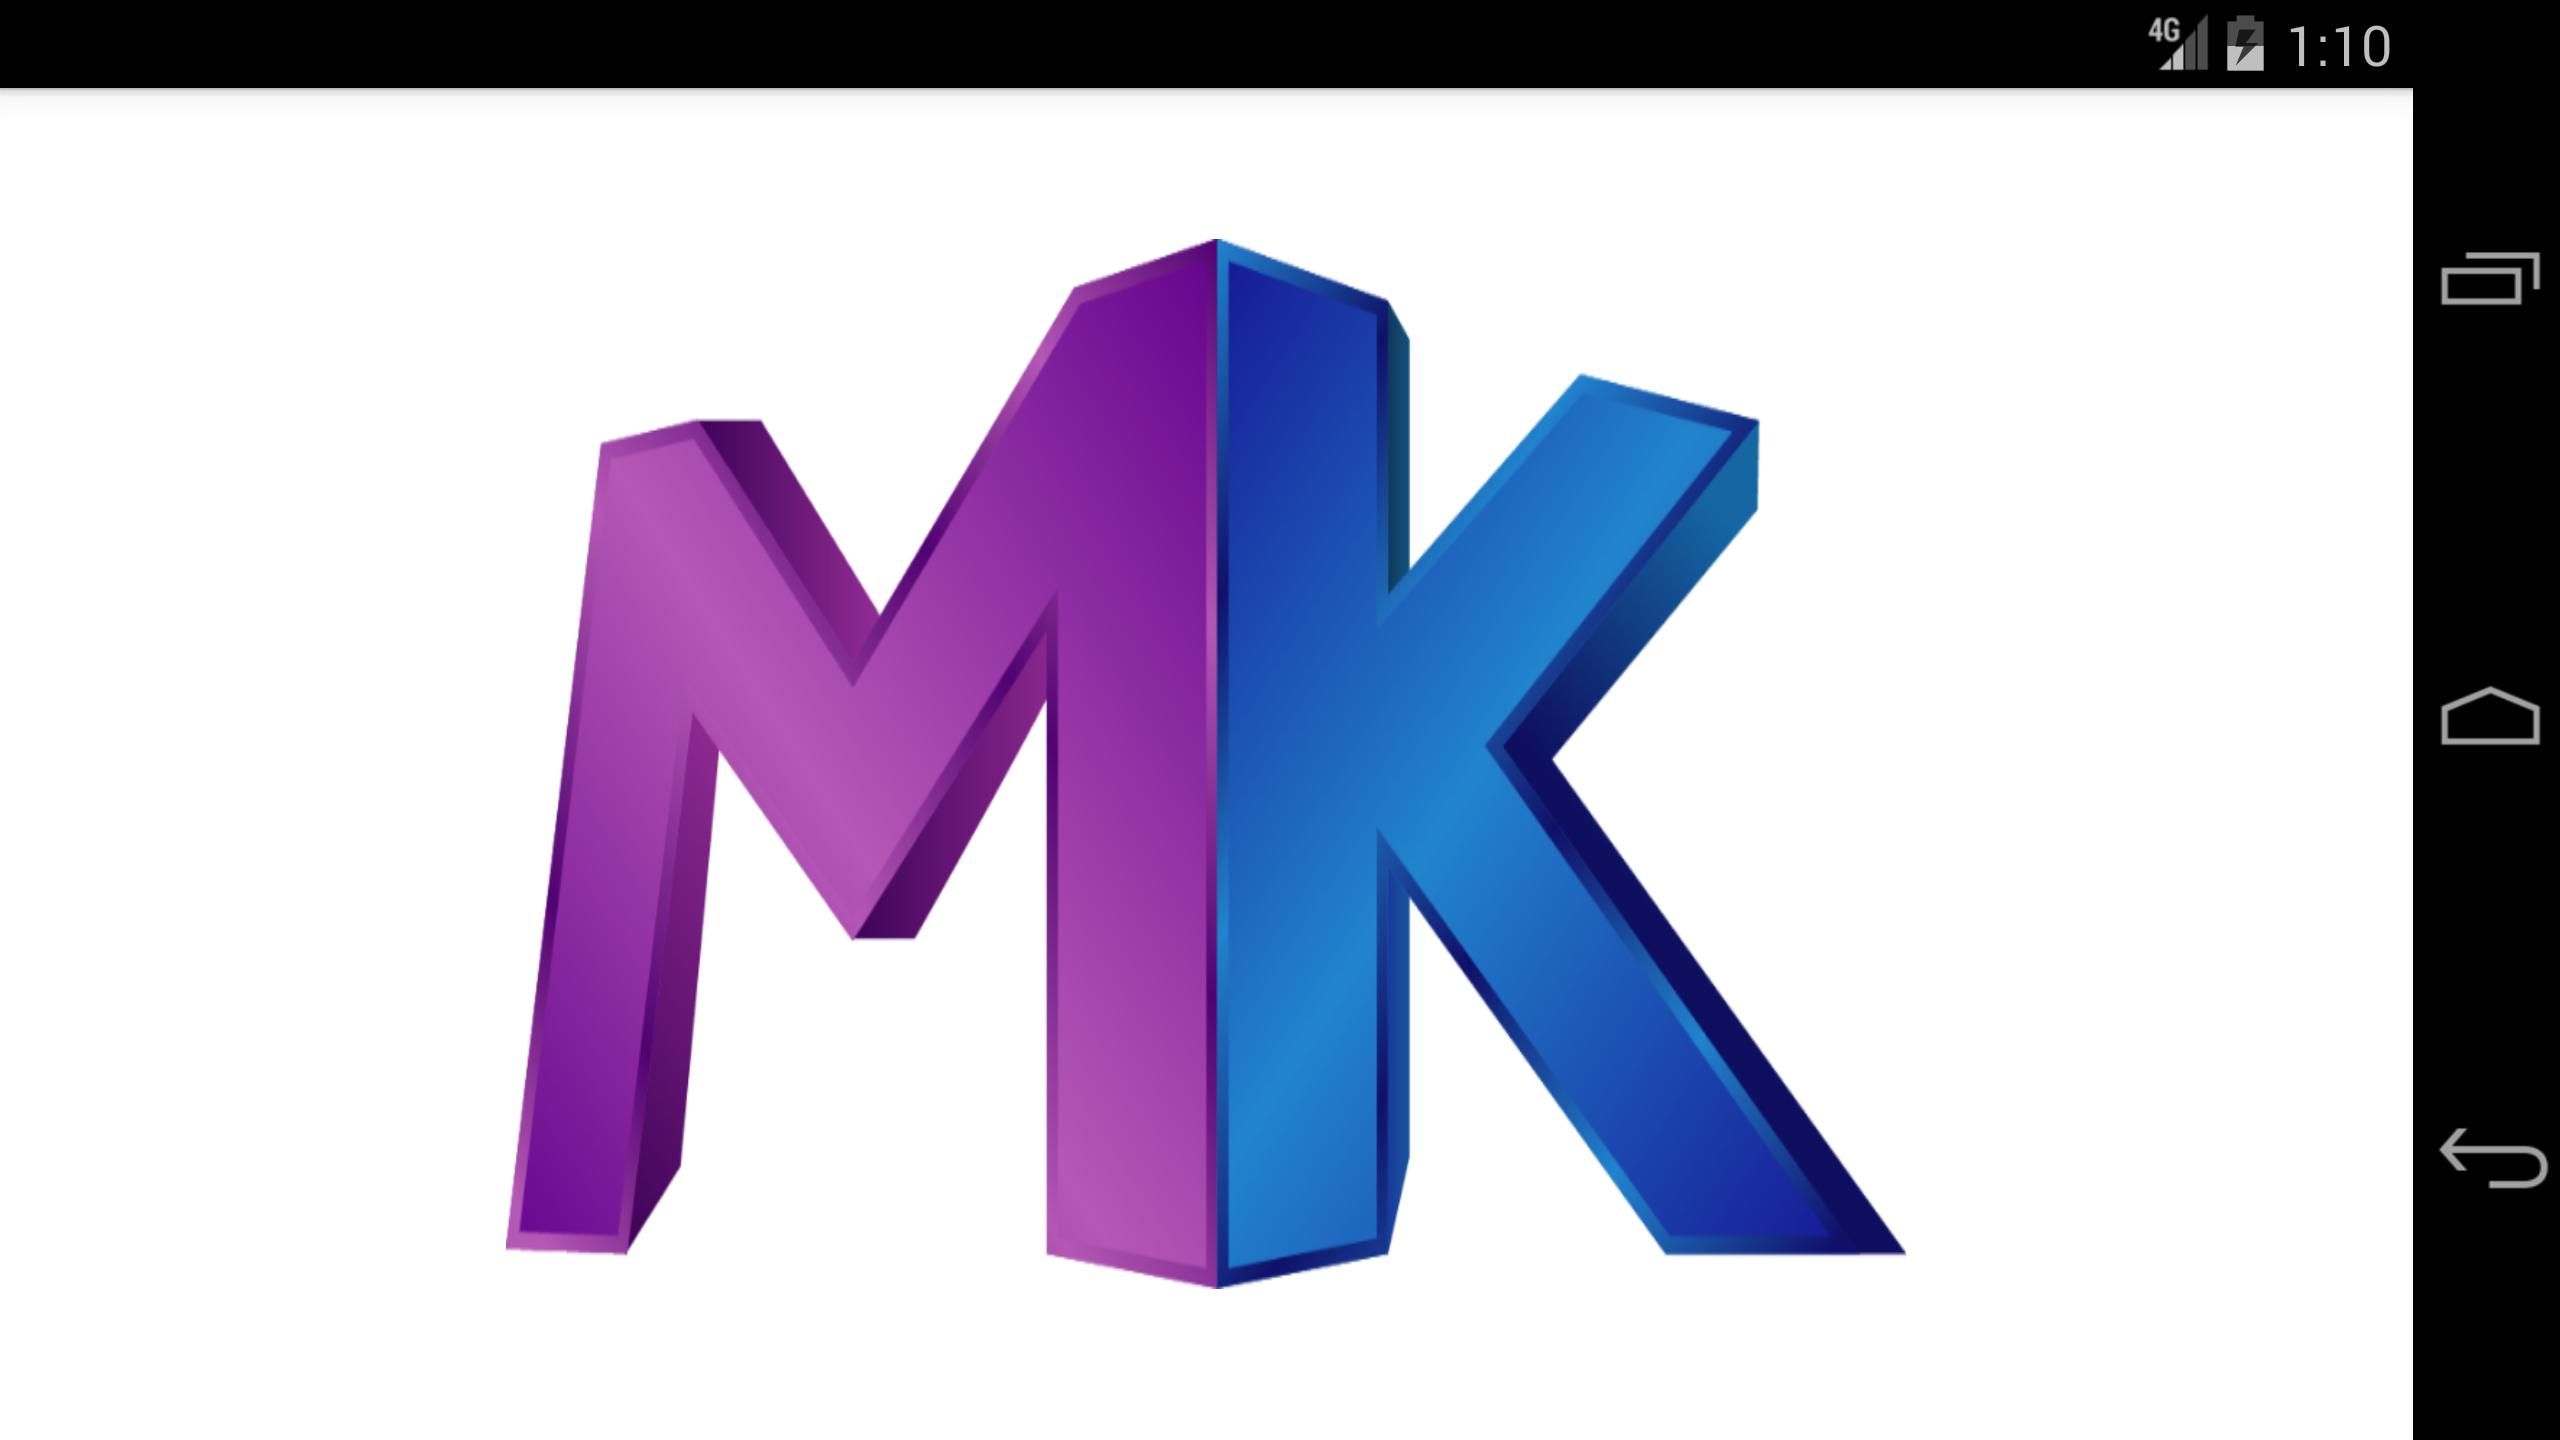 MK TV for Android - APK Download